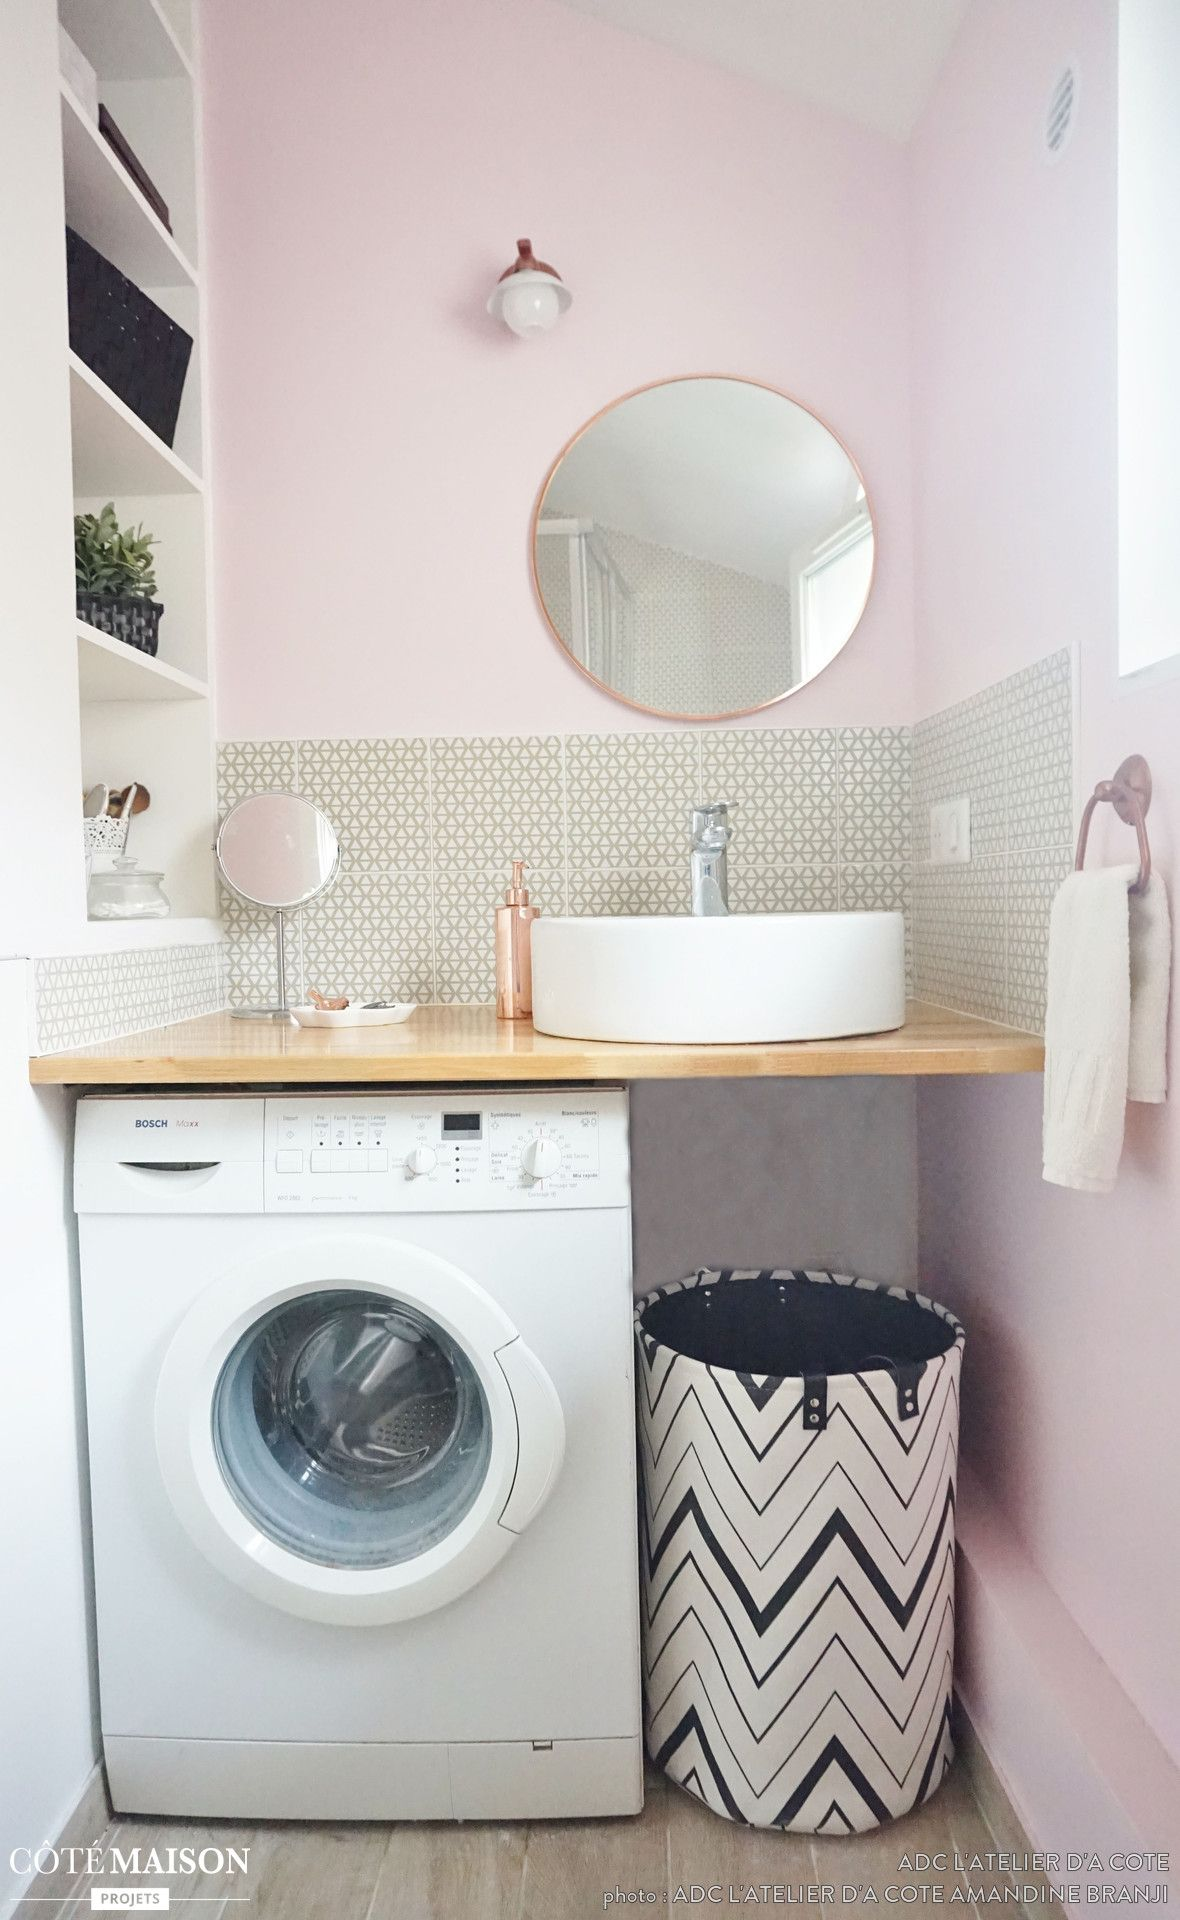 Pin by Basia on Łazienka | Pinterest | Laundry, Small bathroom and ...